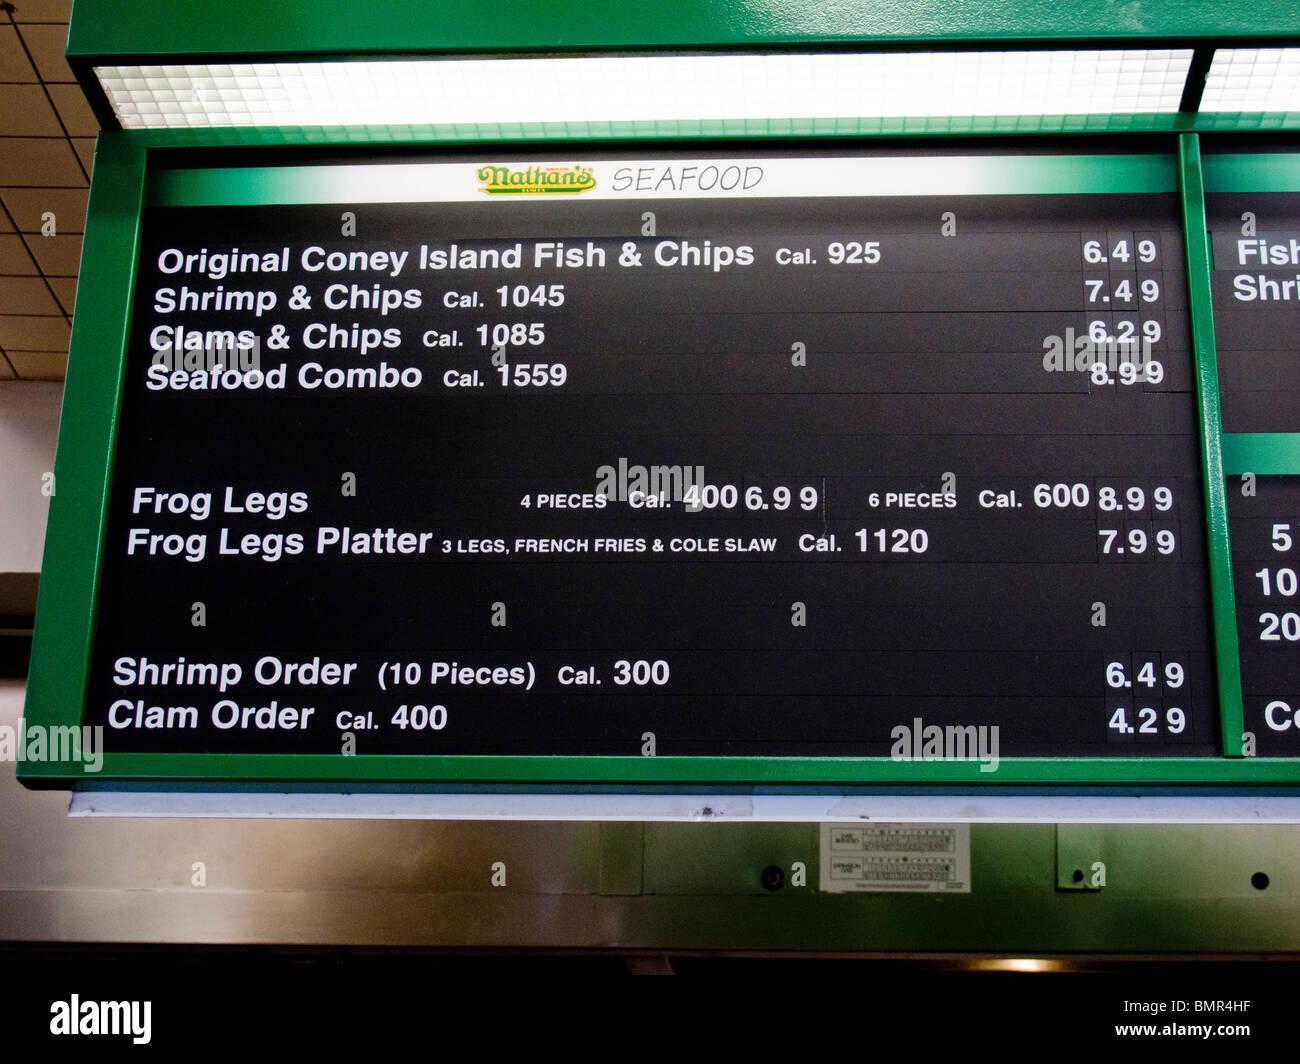 A menu sign at Nathan's restaurant at the famous Coney Island amusement park in Brooklyn, New York, lists a - Stock Image